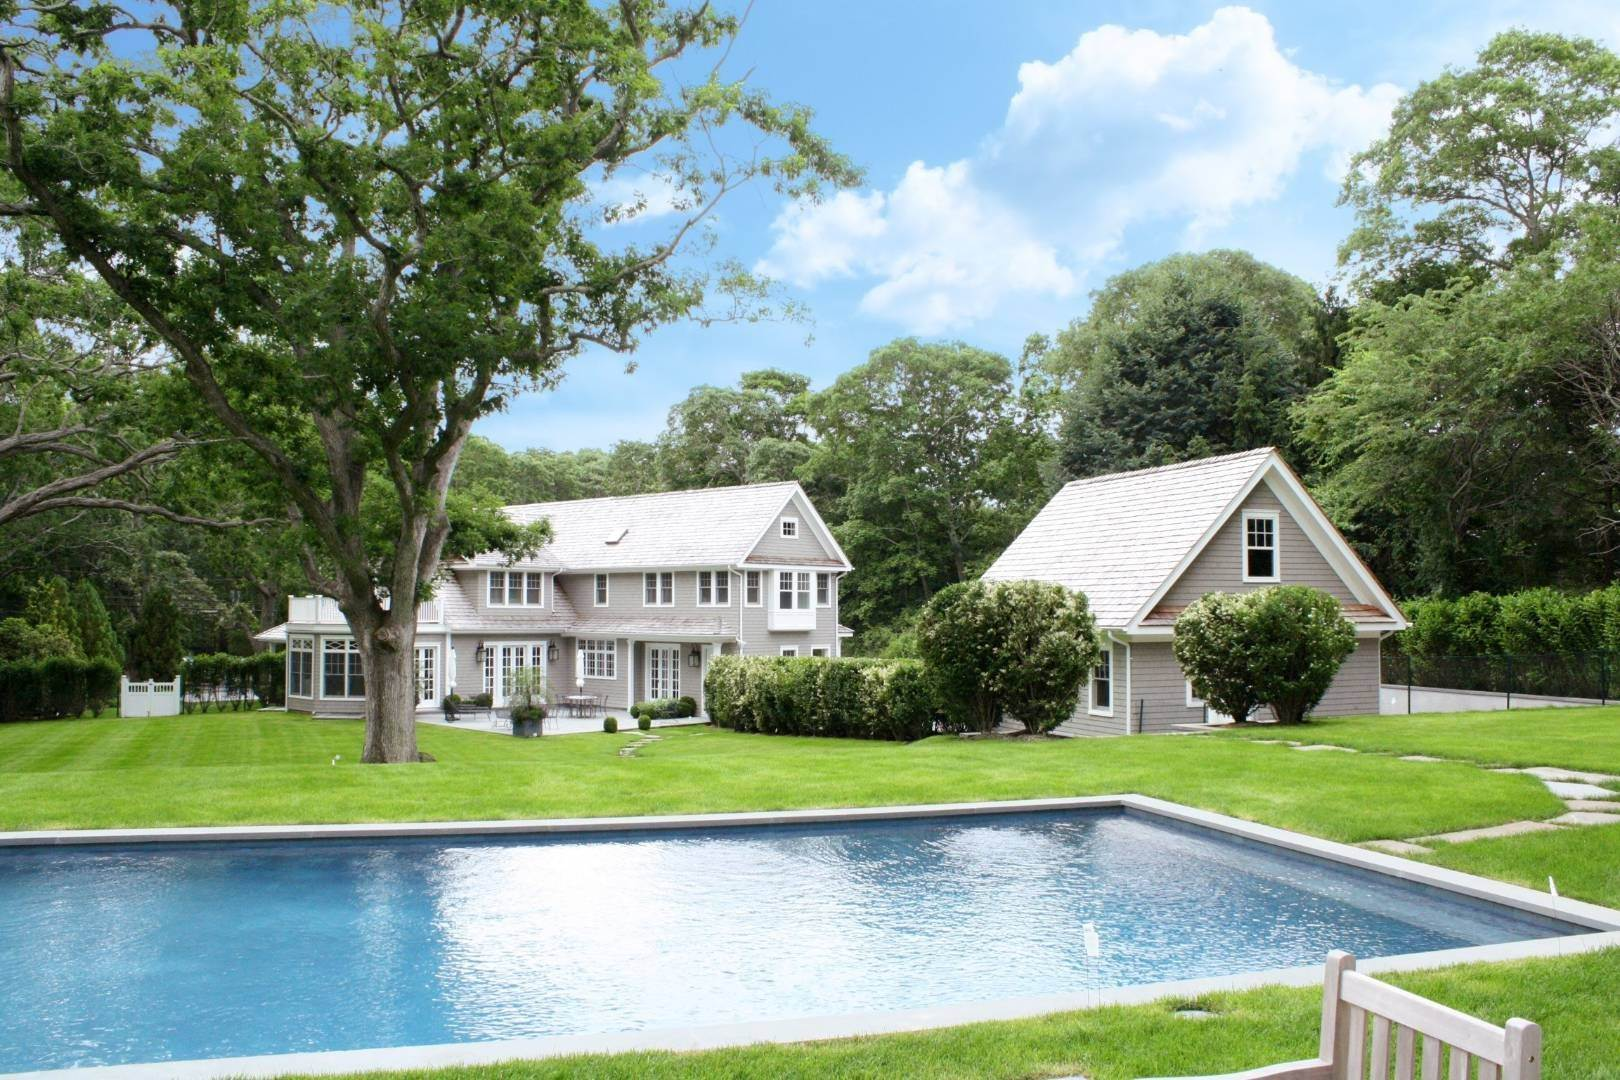 Single Family Home for Sale at Four Seasons Retreat 105 Cove Hollow Road, East Hampton, NY 11937